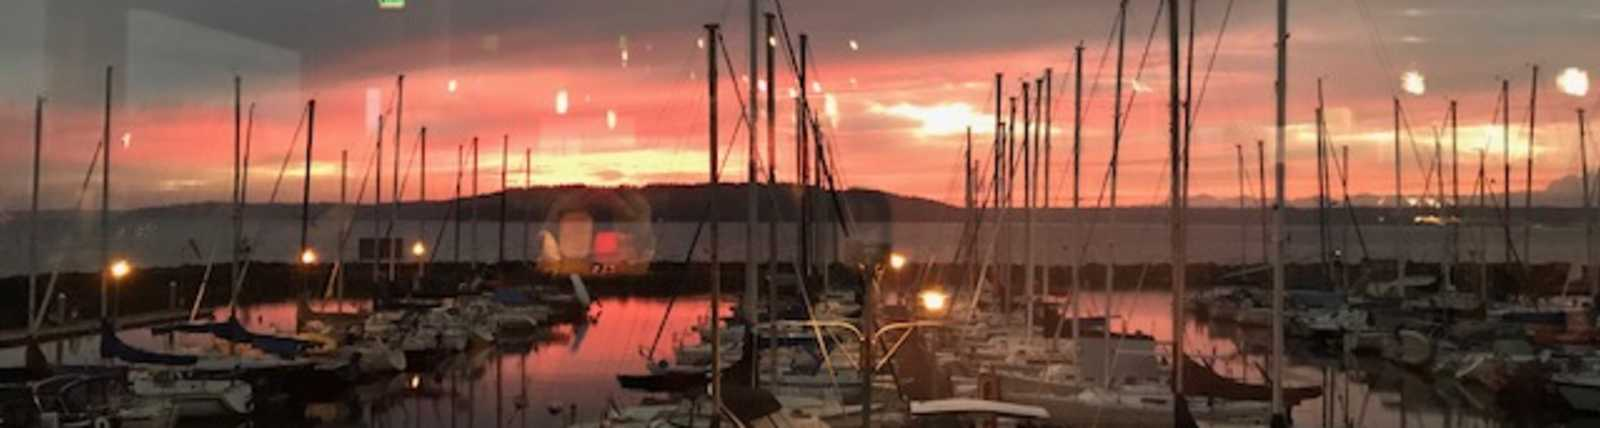 Sunset at Anthony's HomePort